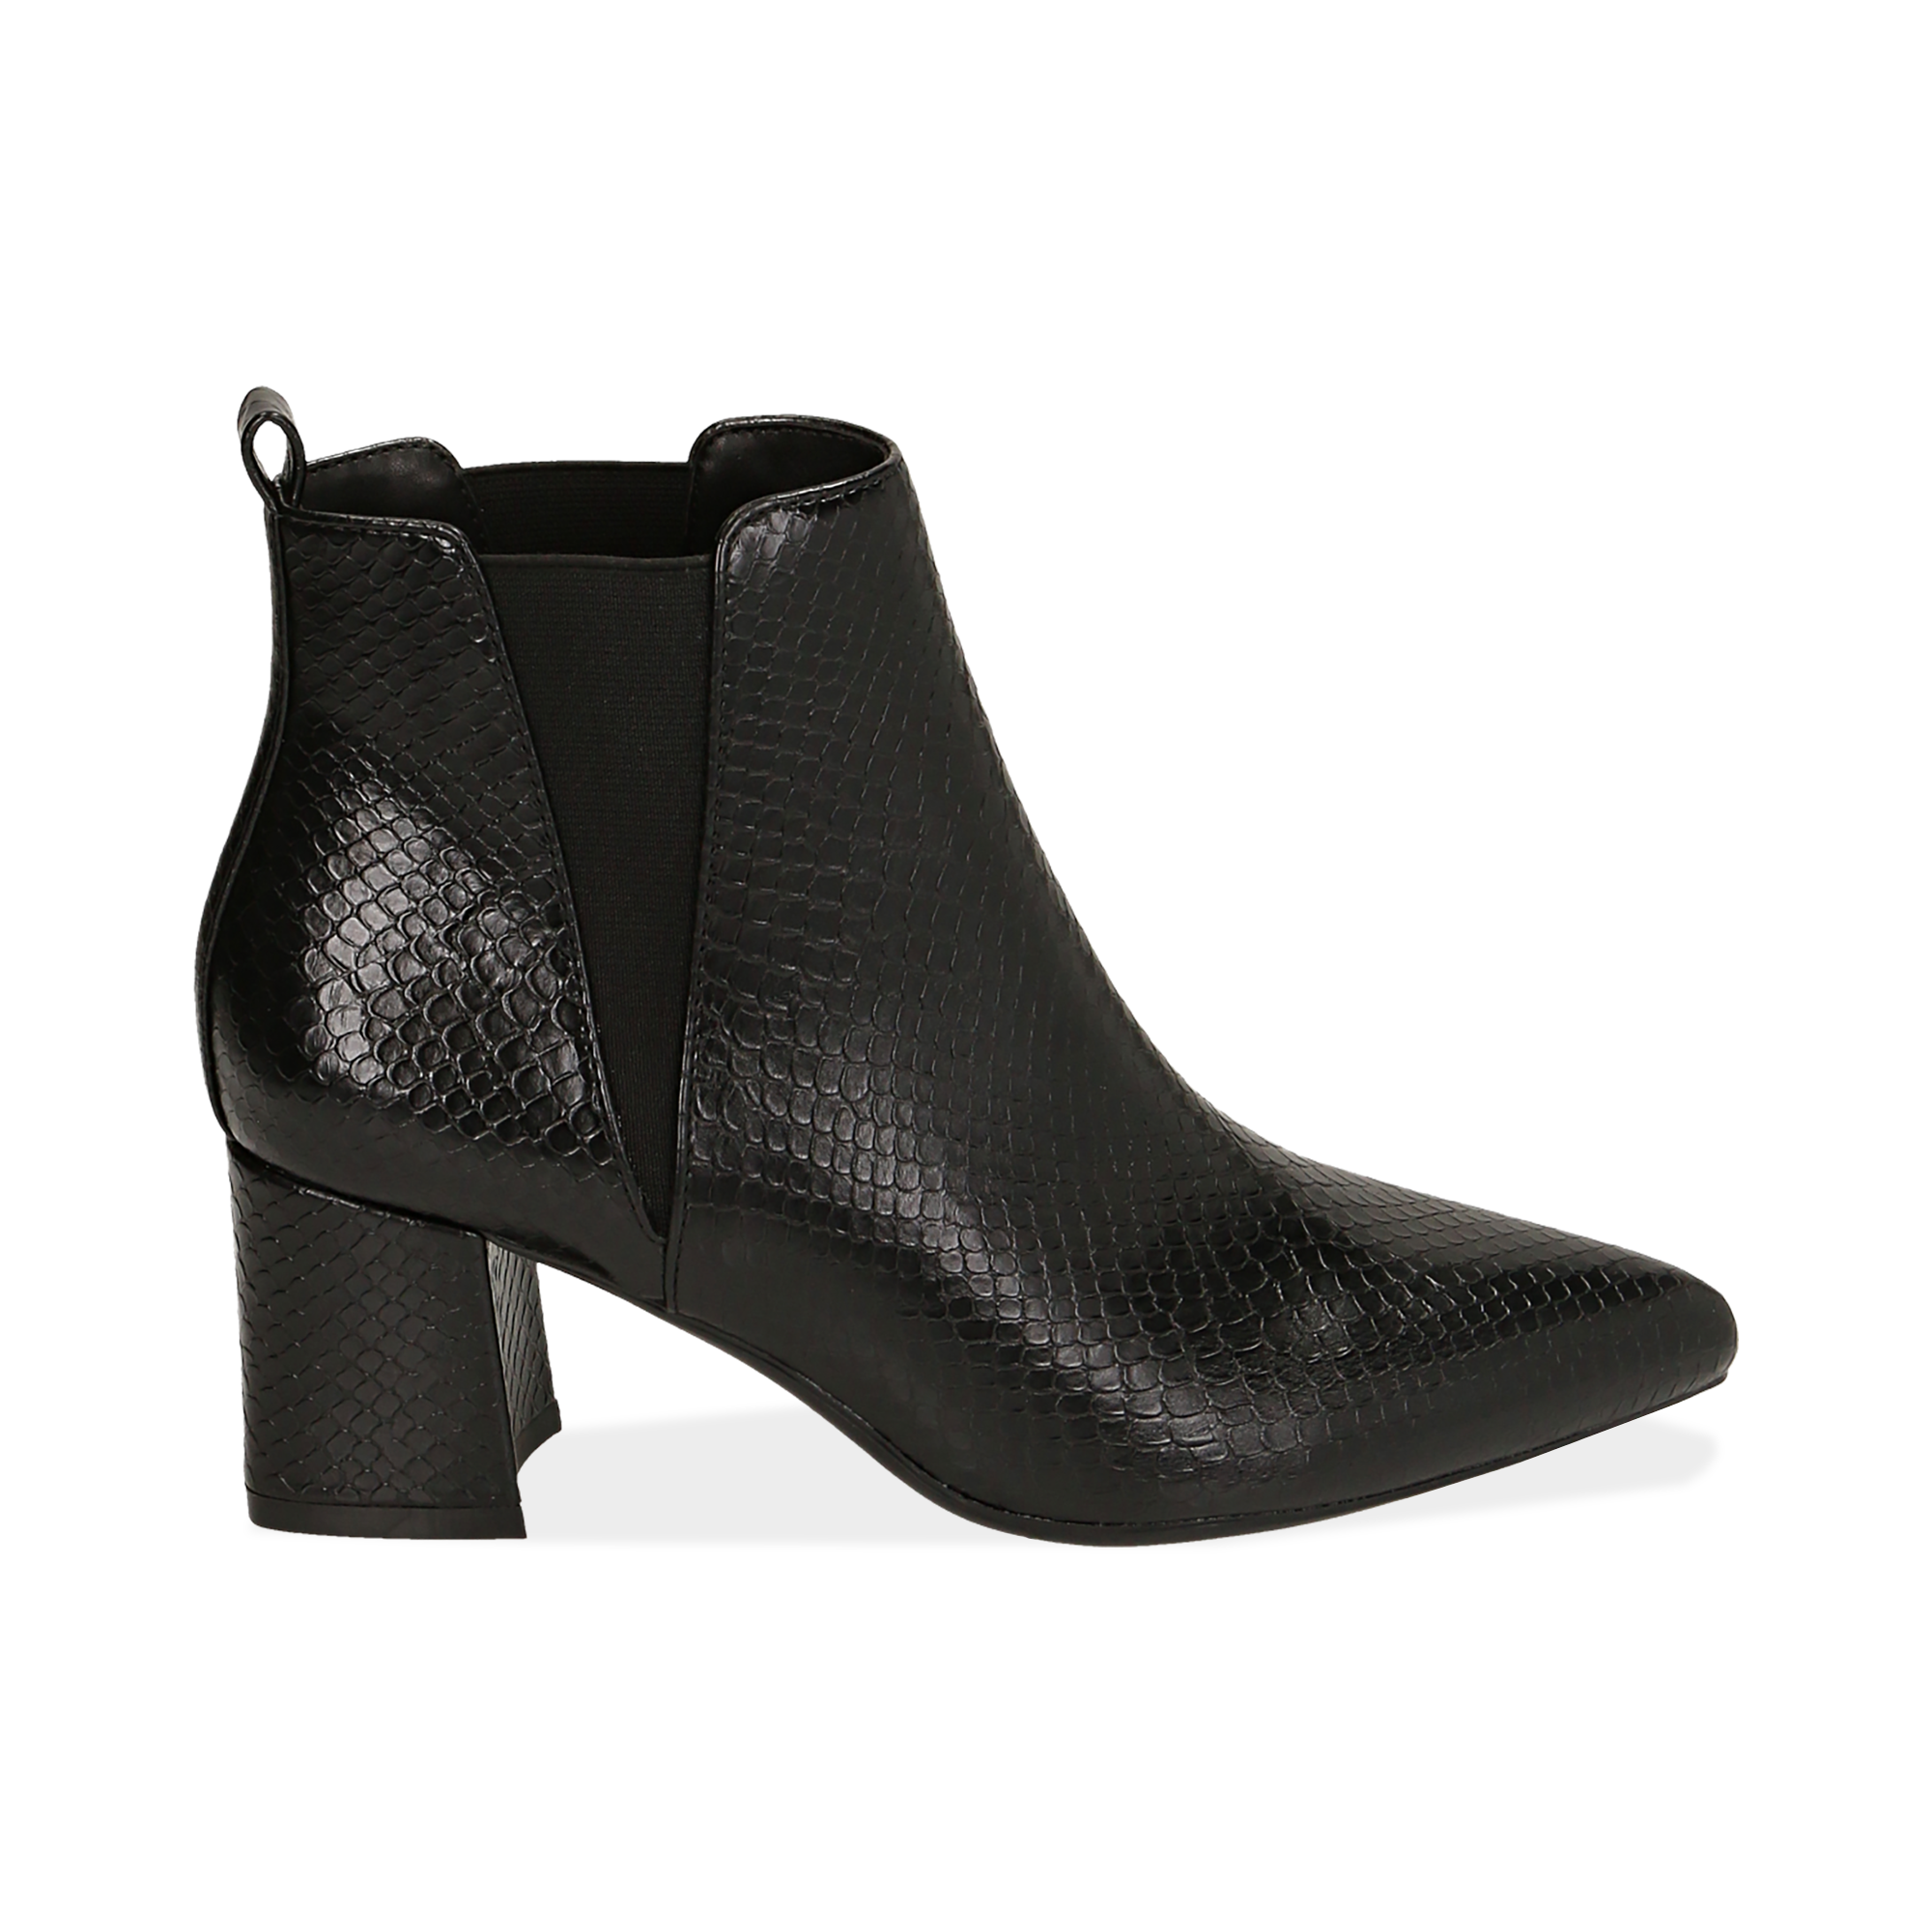 Ankle boots neri stampa vipera, tacco 6 cm